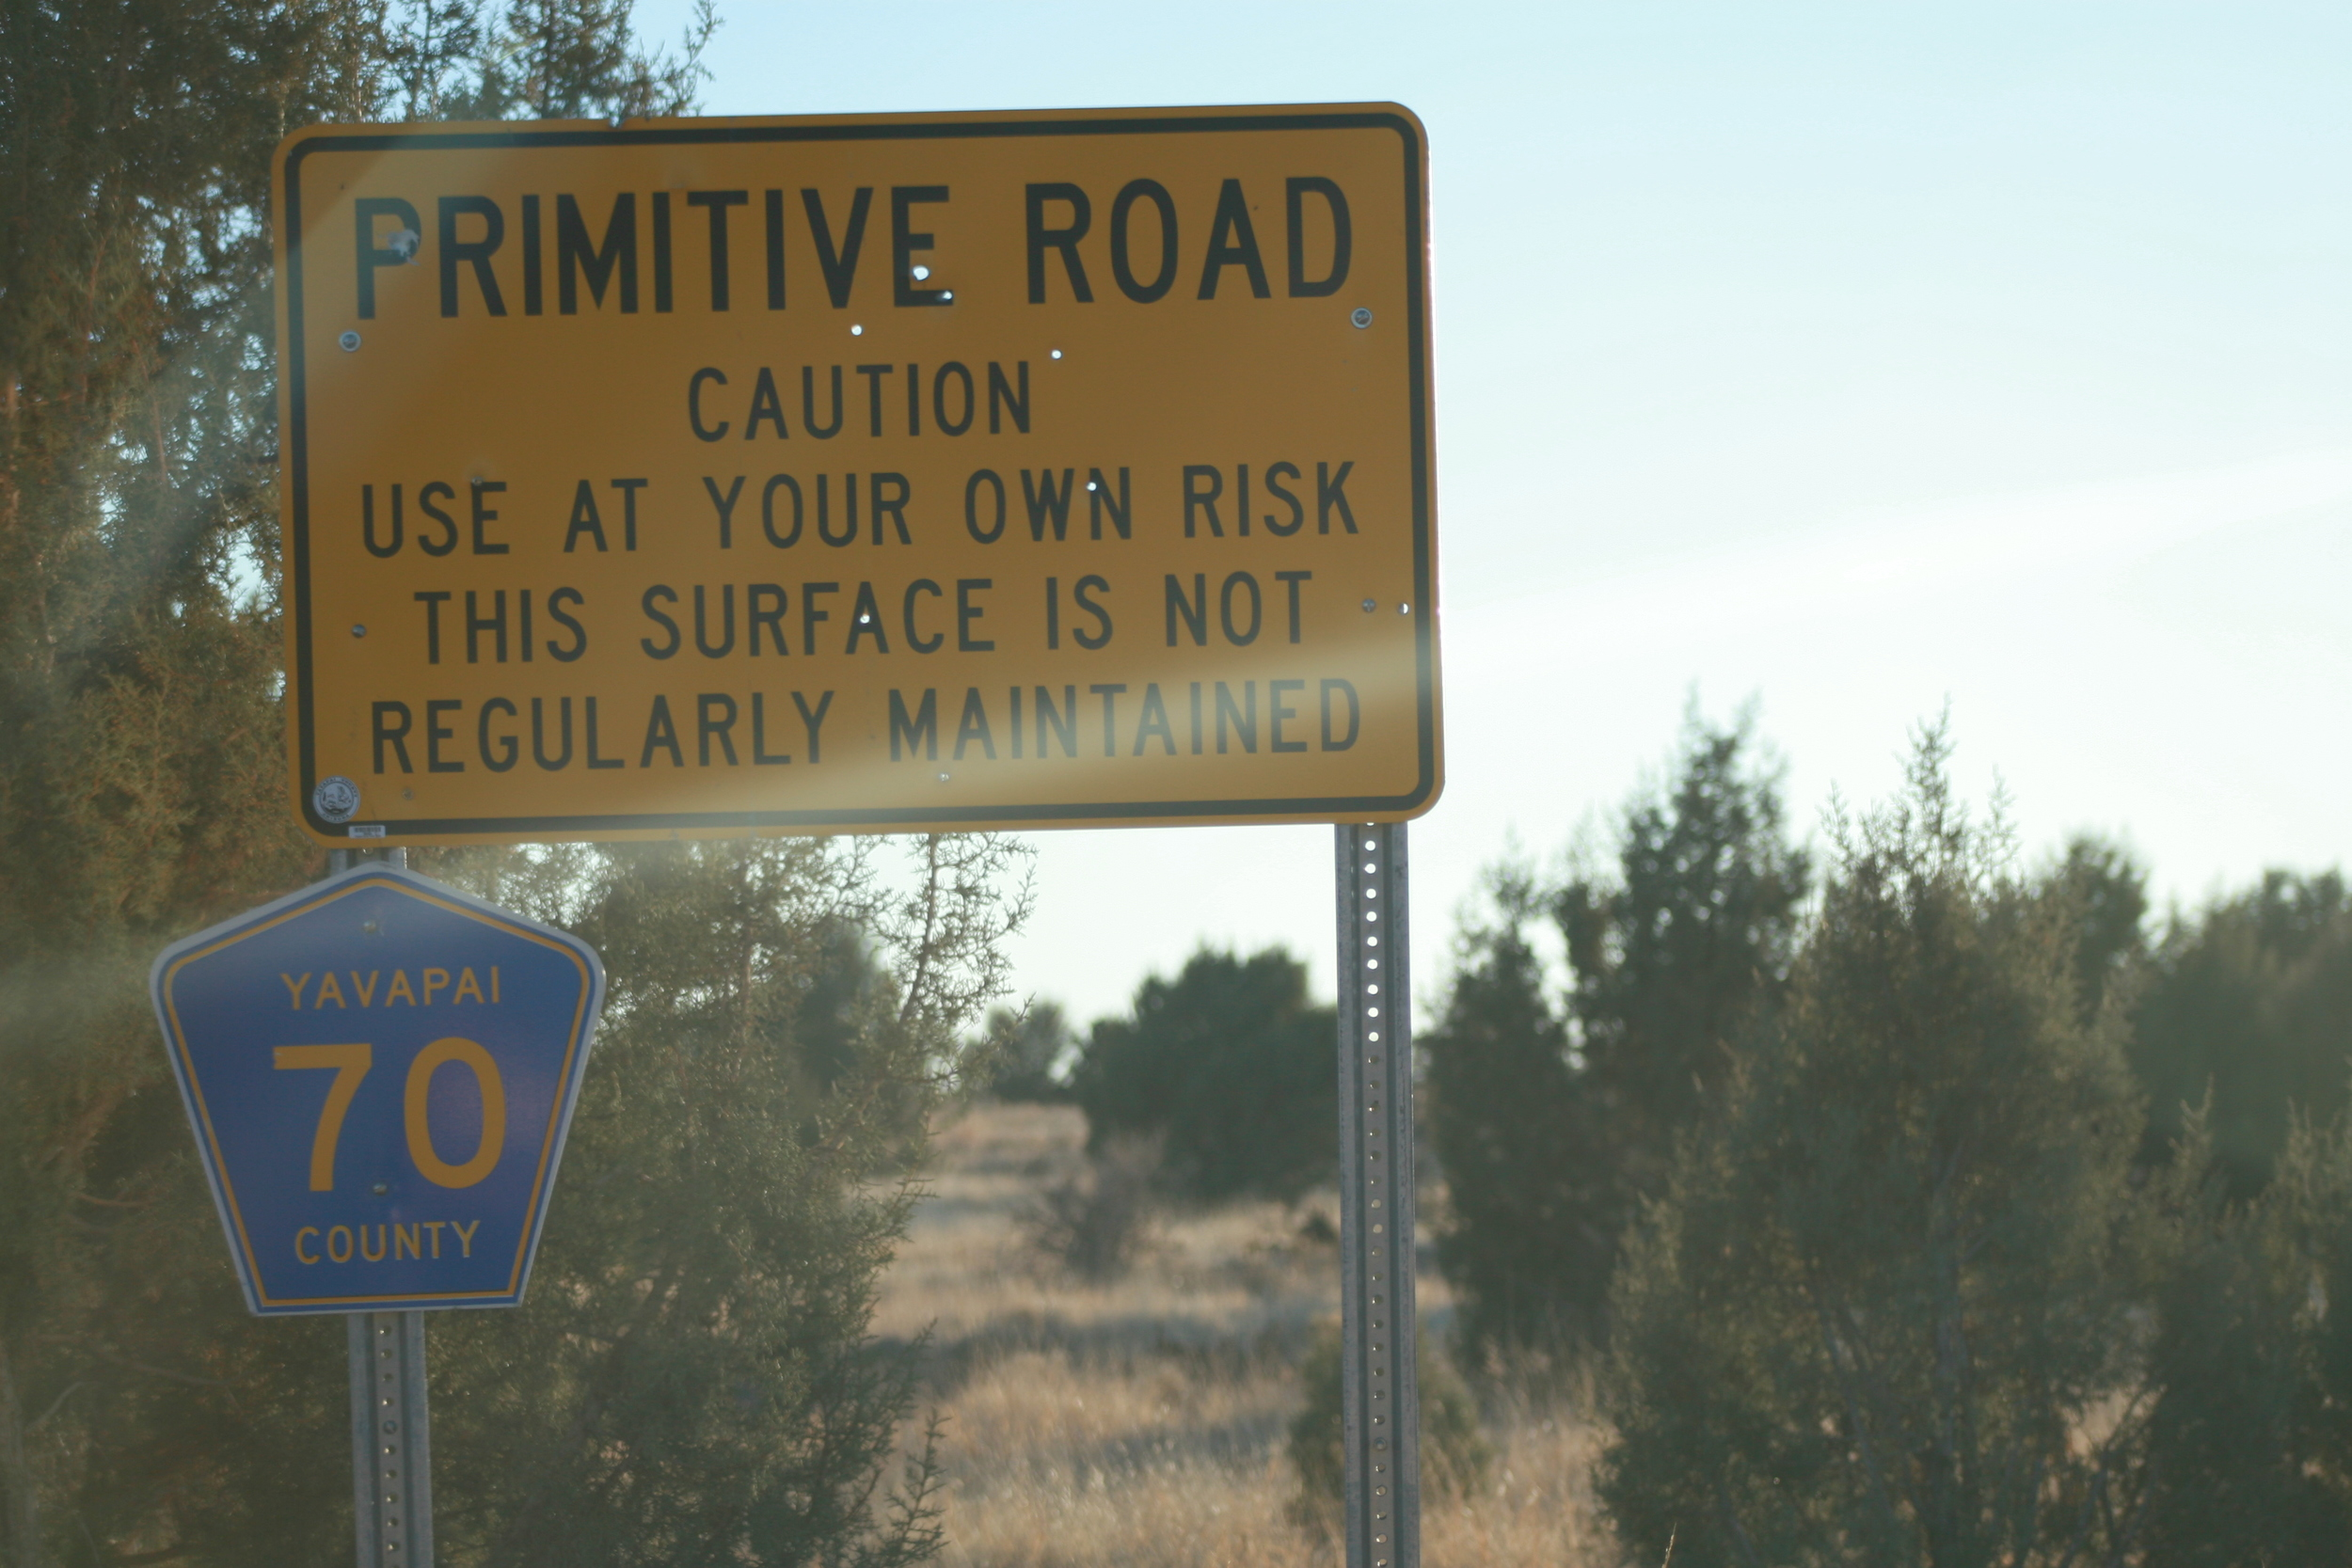 If you see a sign like this and turn back, you have no business being on a road trip.